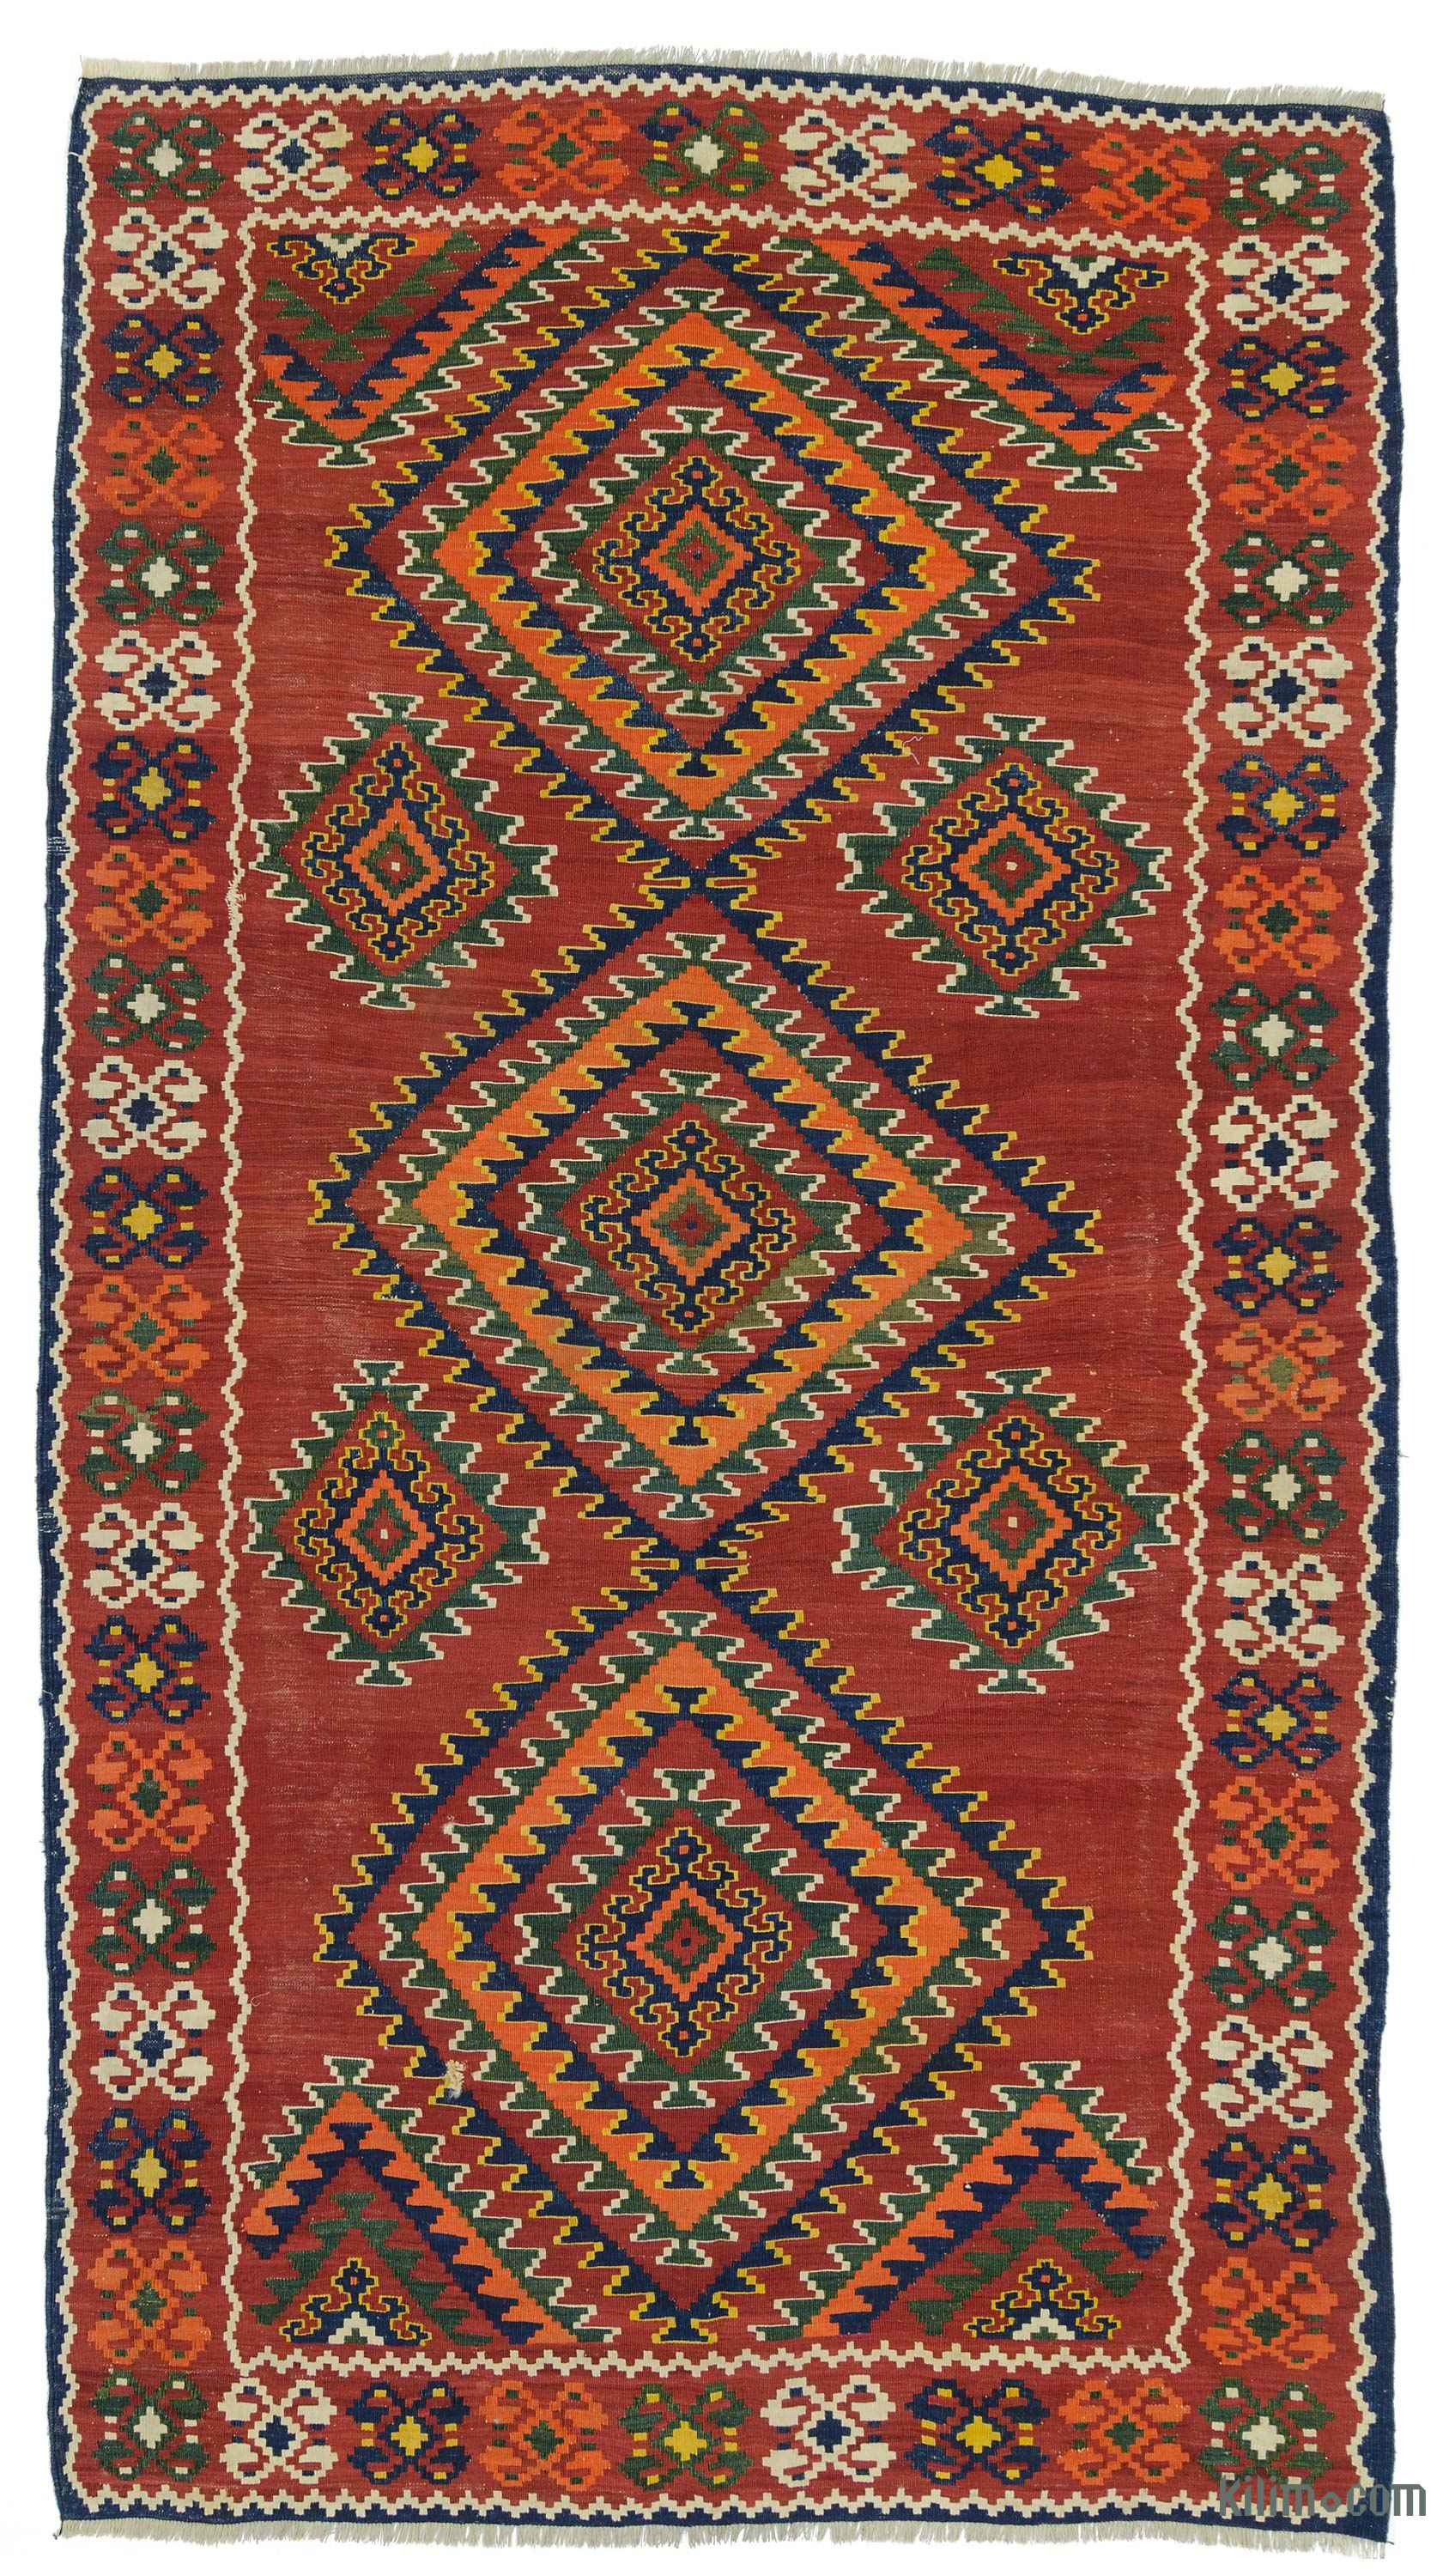 antique rugs | kilim rugs, overdyed vintage rugs, hand-made